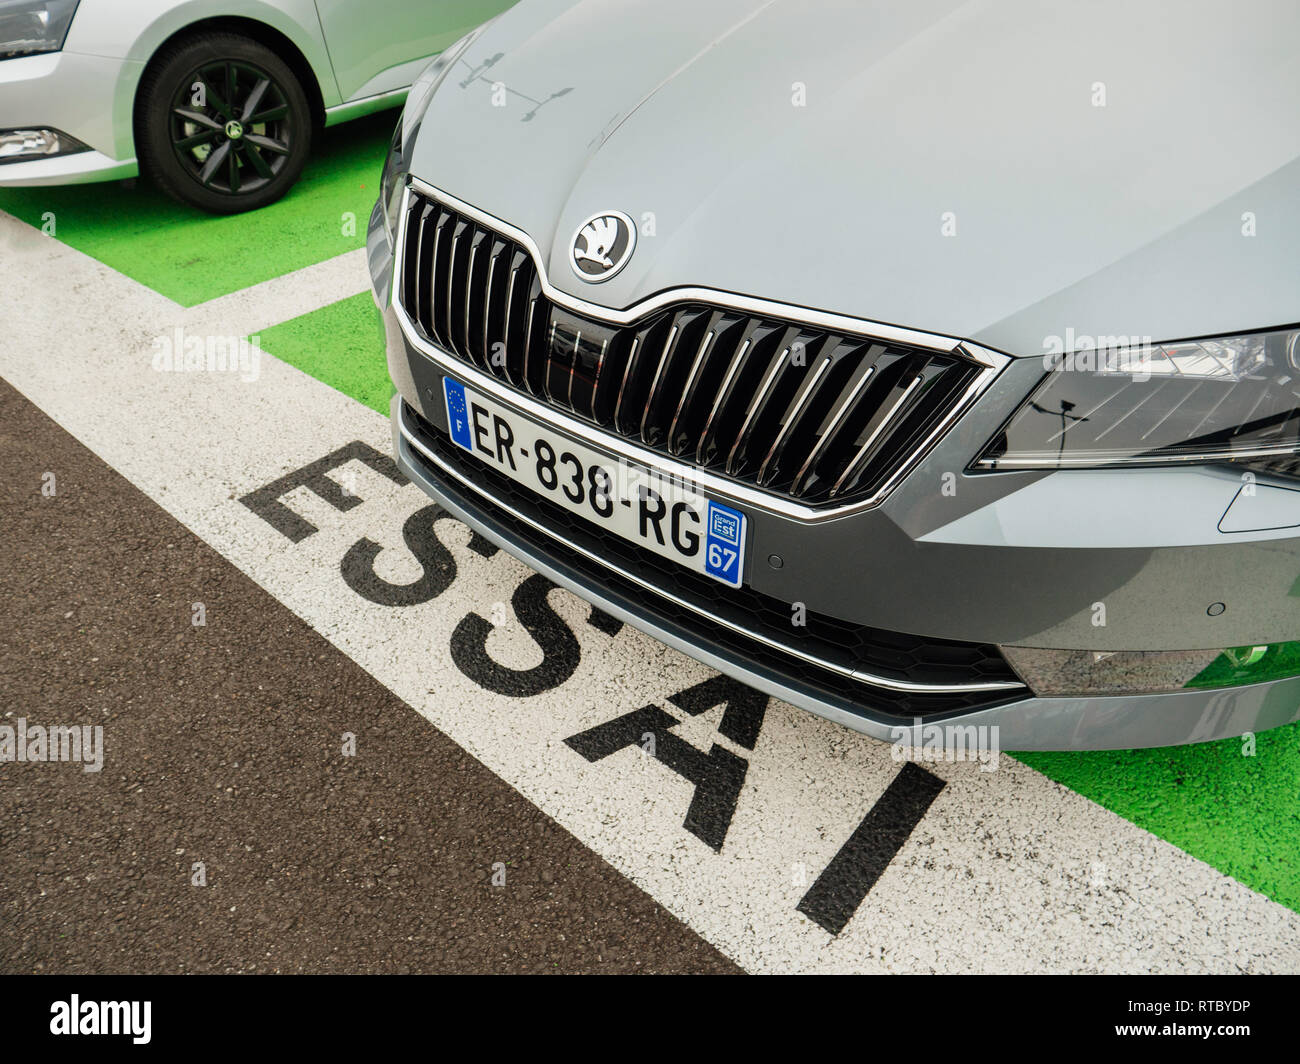 PARIS, FRANCE - NOV 7, 2017: Essai text translated as Test Drive cars with Skoda Superb luxury car made by Volkswagen at the car dealership garage Stock Photo